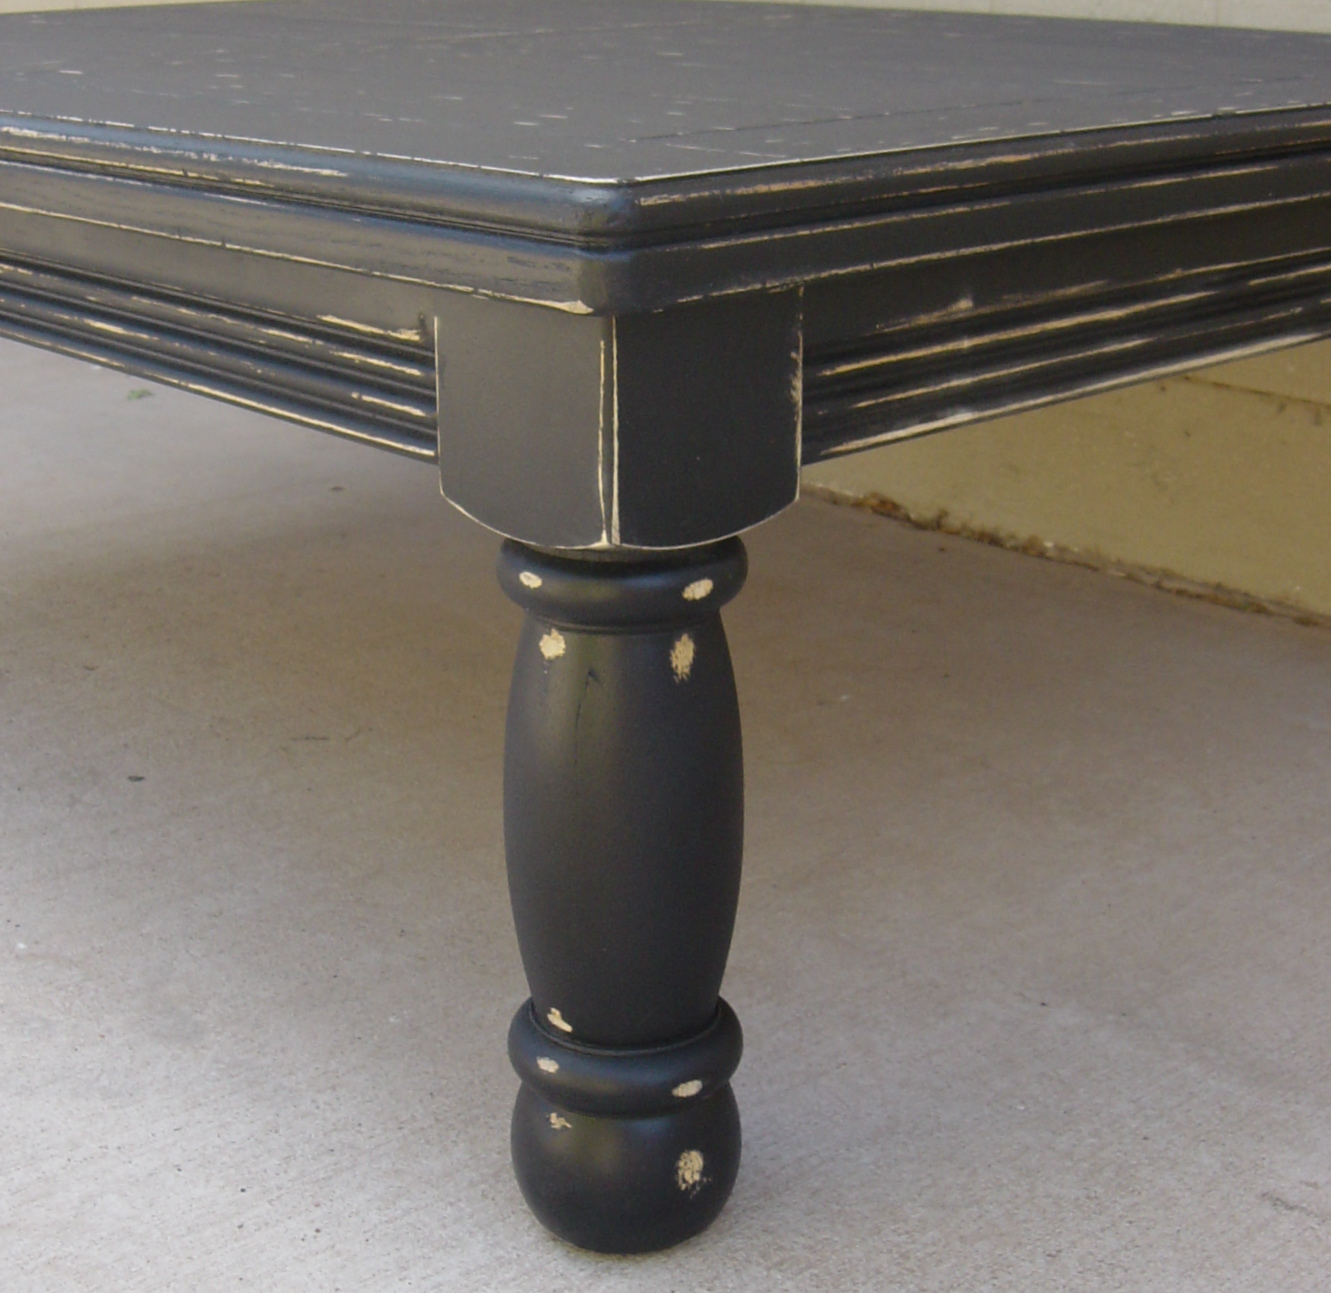 The Backyard Boutique By Five To Nine Furnishings: Black